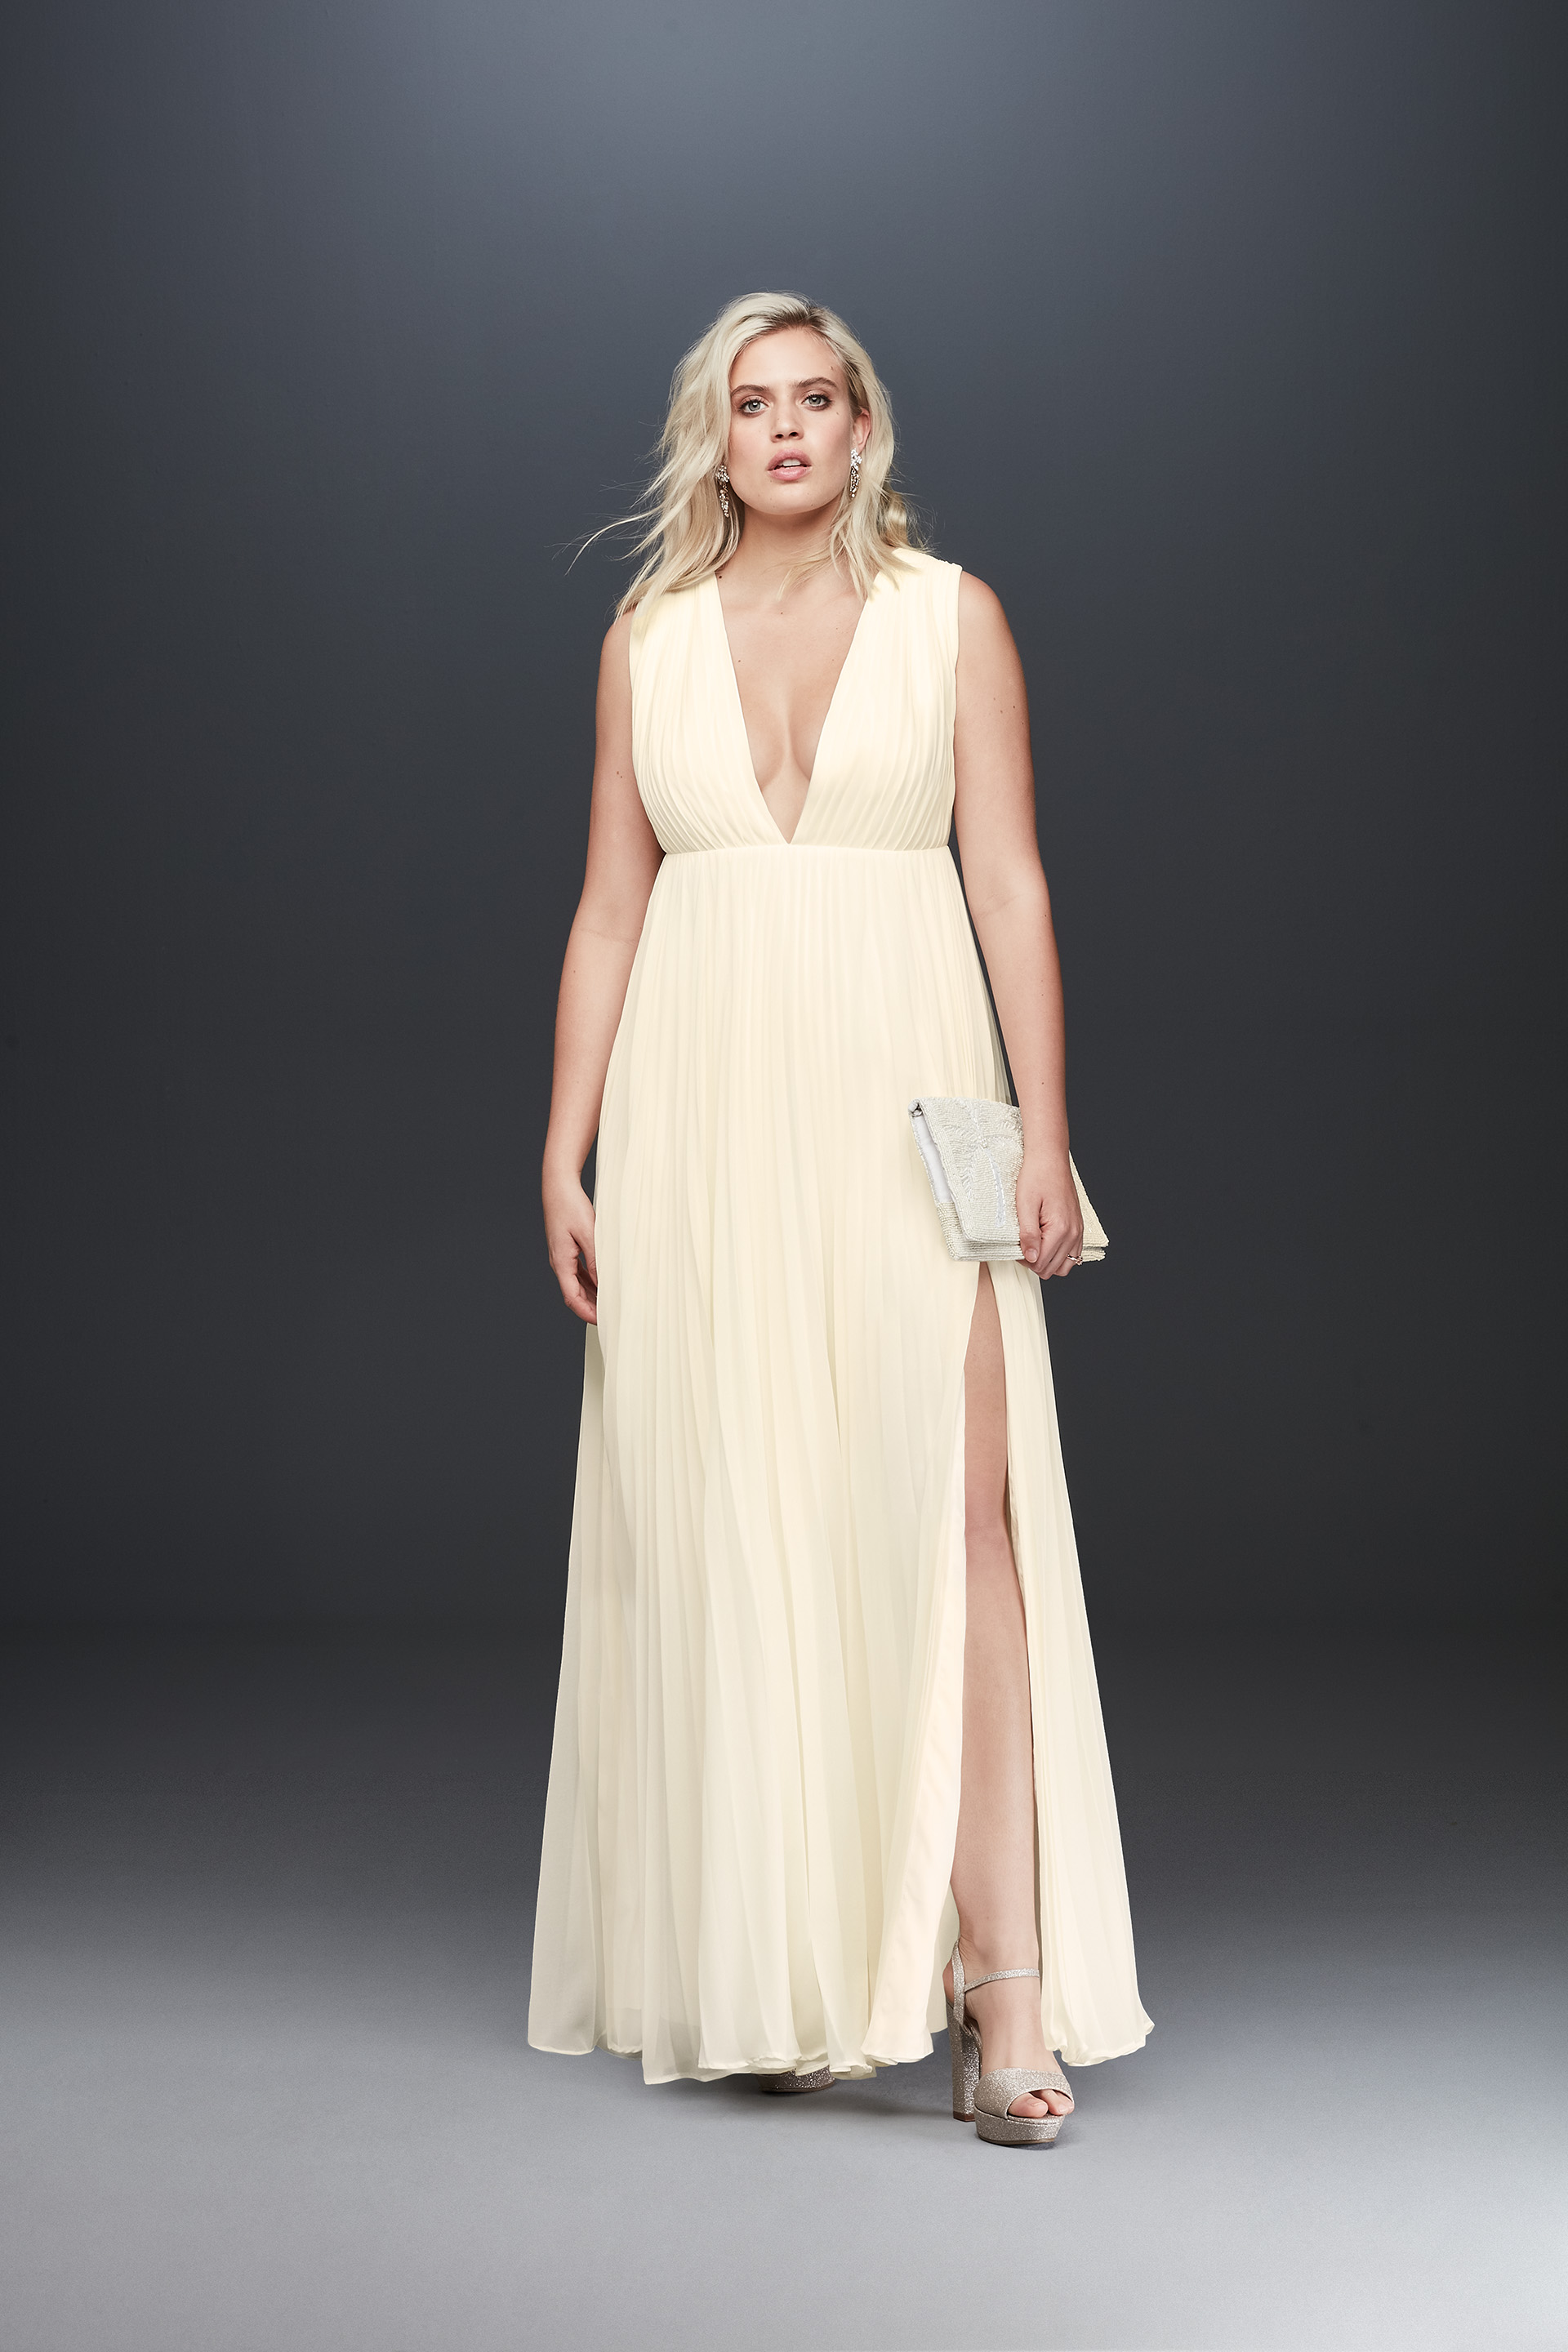 Bride in tank plunging neckline wedding dress from Fame & Partners x David's Bridal collection